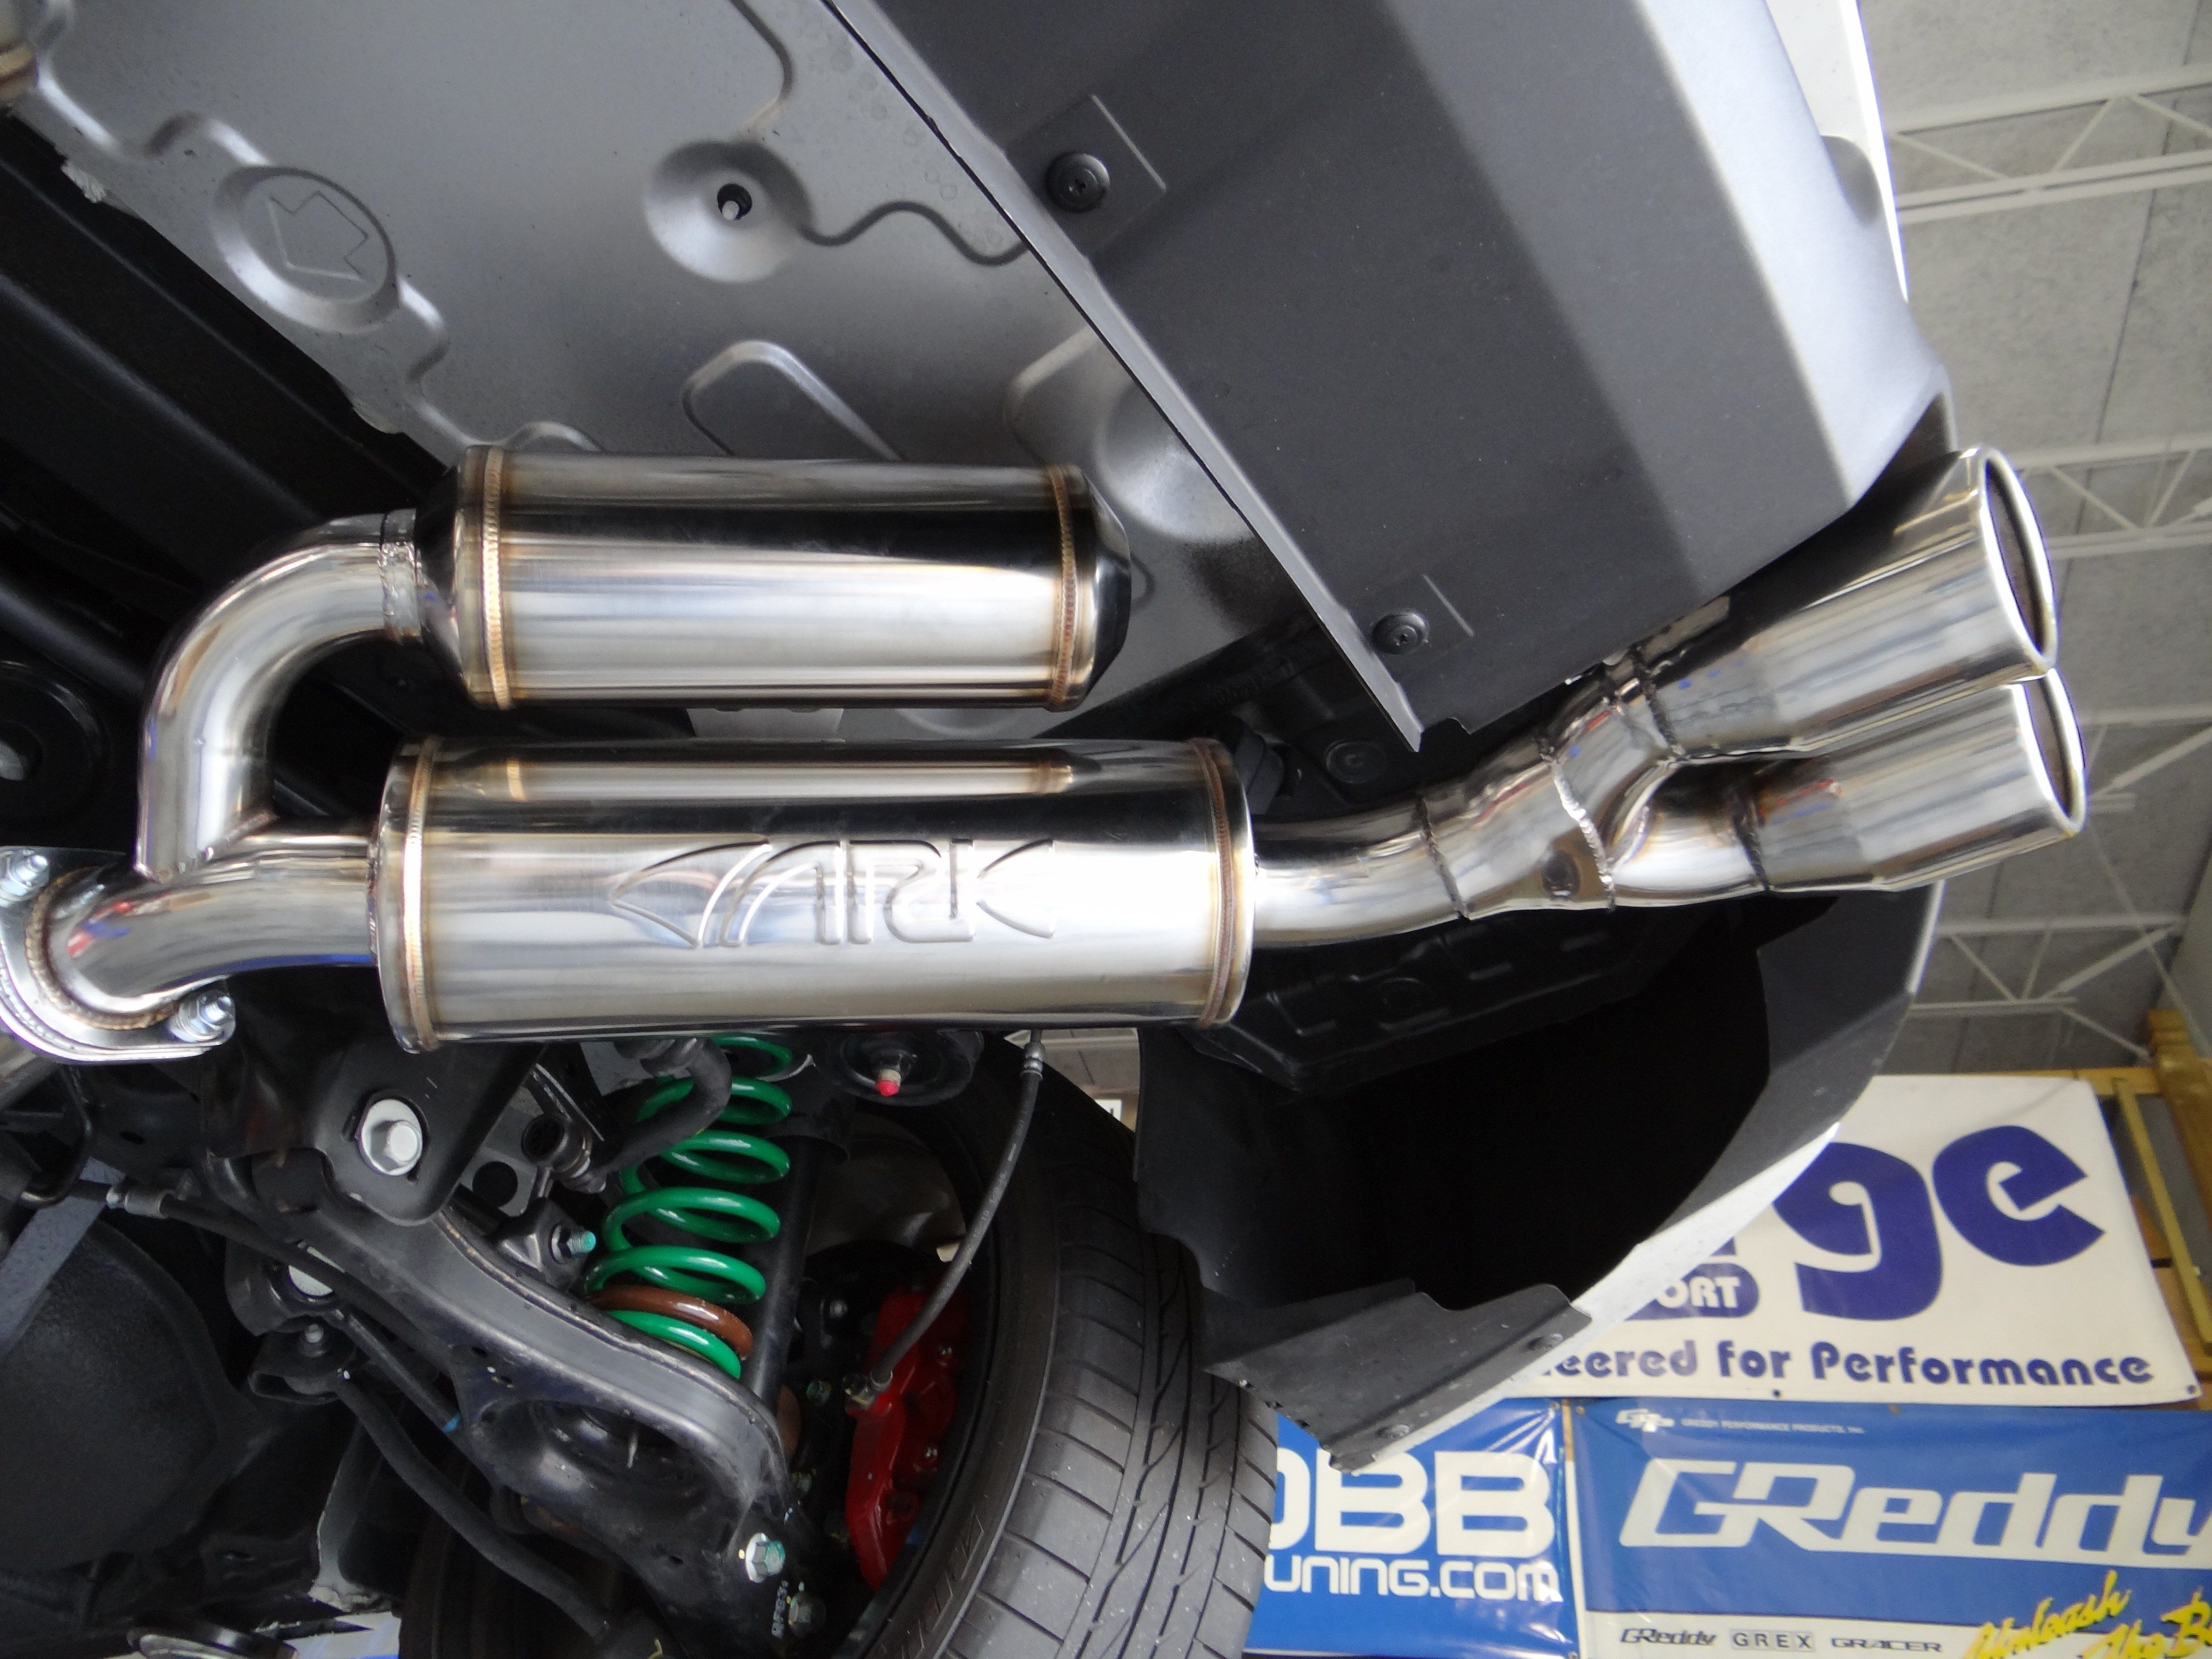 tein tech eibach genesis savannah suspension s forum prokit vs sportline page hyundai